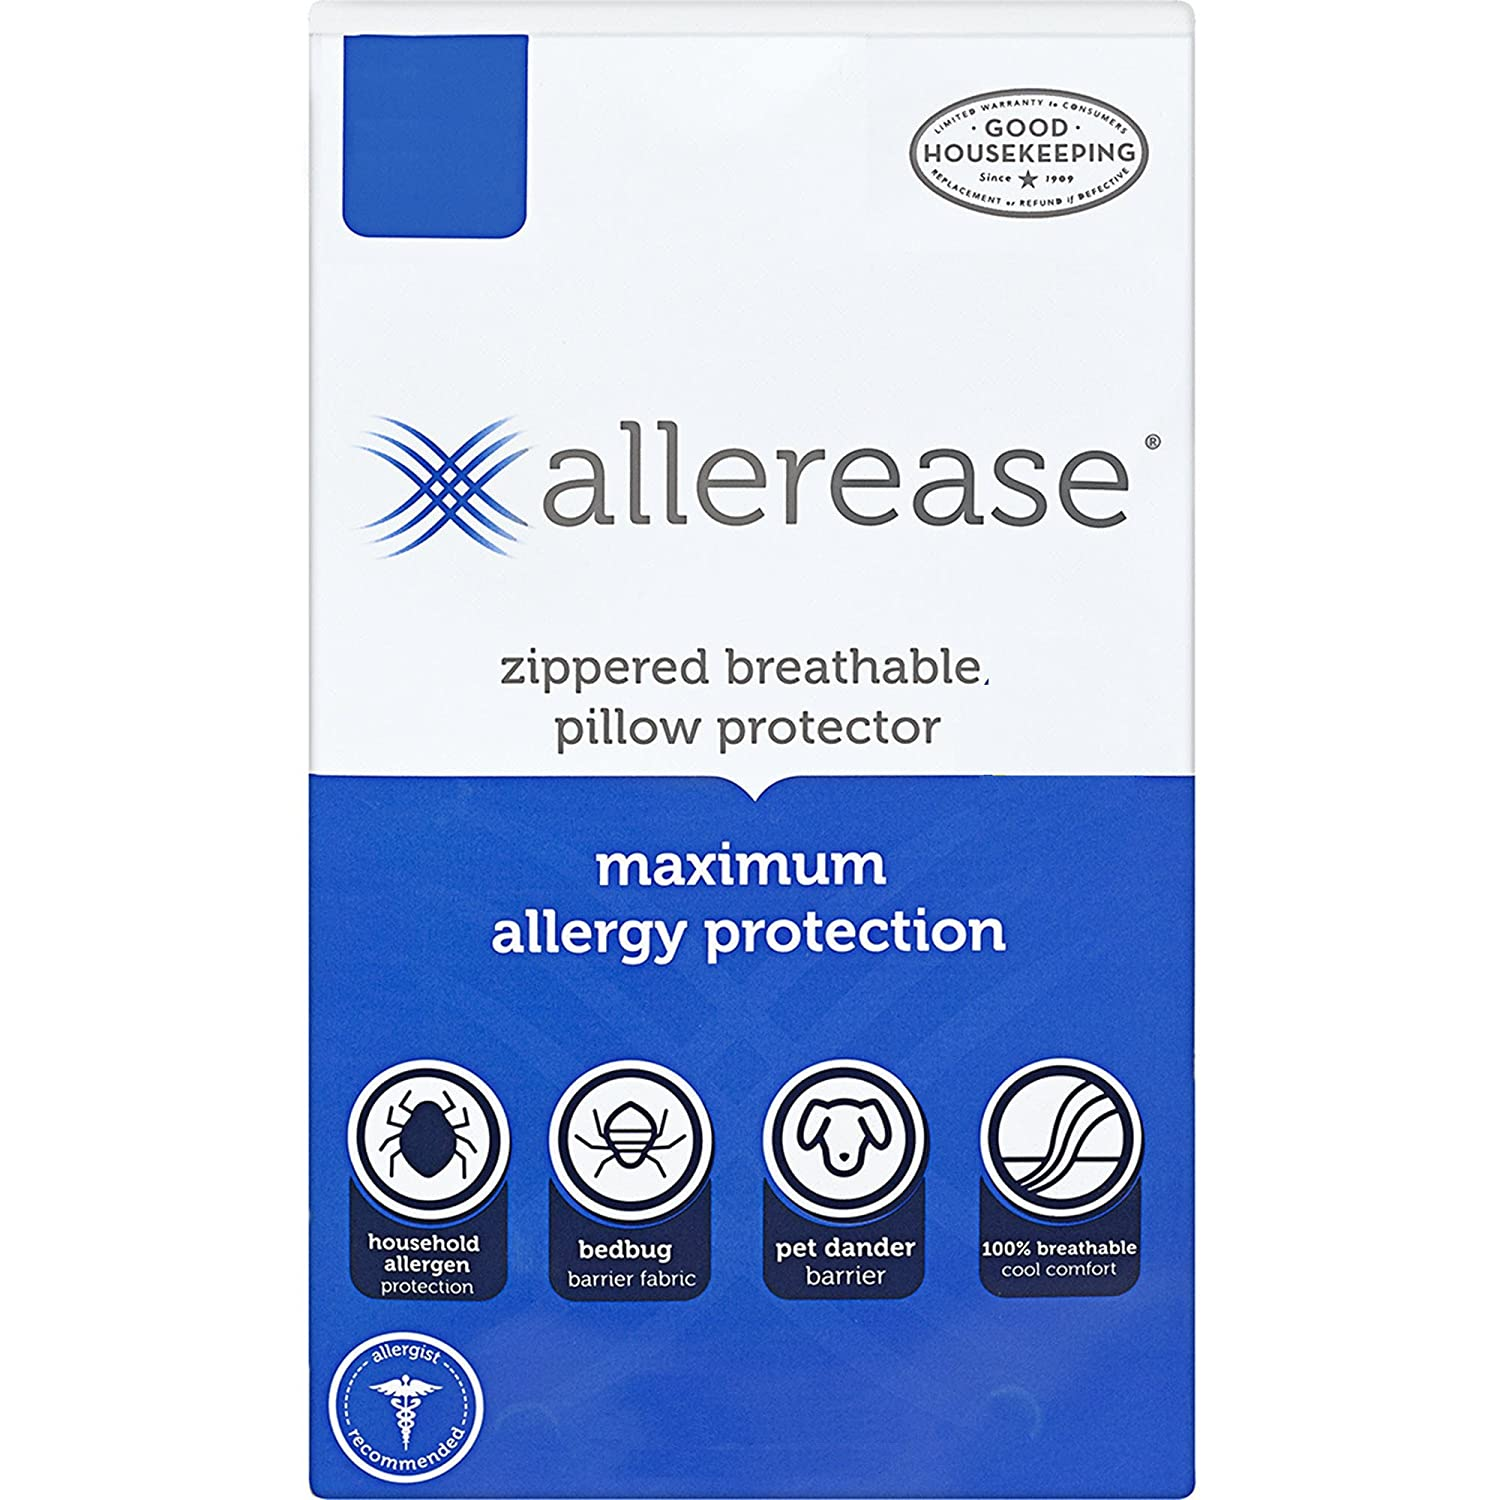 """AllerEase Maximum Allergy Protection Pillow Protectors – Hypoallergenic, Zippered, Allergist Recommended, Prevent Collection of Dust Mites, Bed Bugs and Other Allergens, King Sized, 20"""" x 36"""" 20"""" x 36"""" American Textile 29336AMZ"""